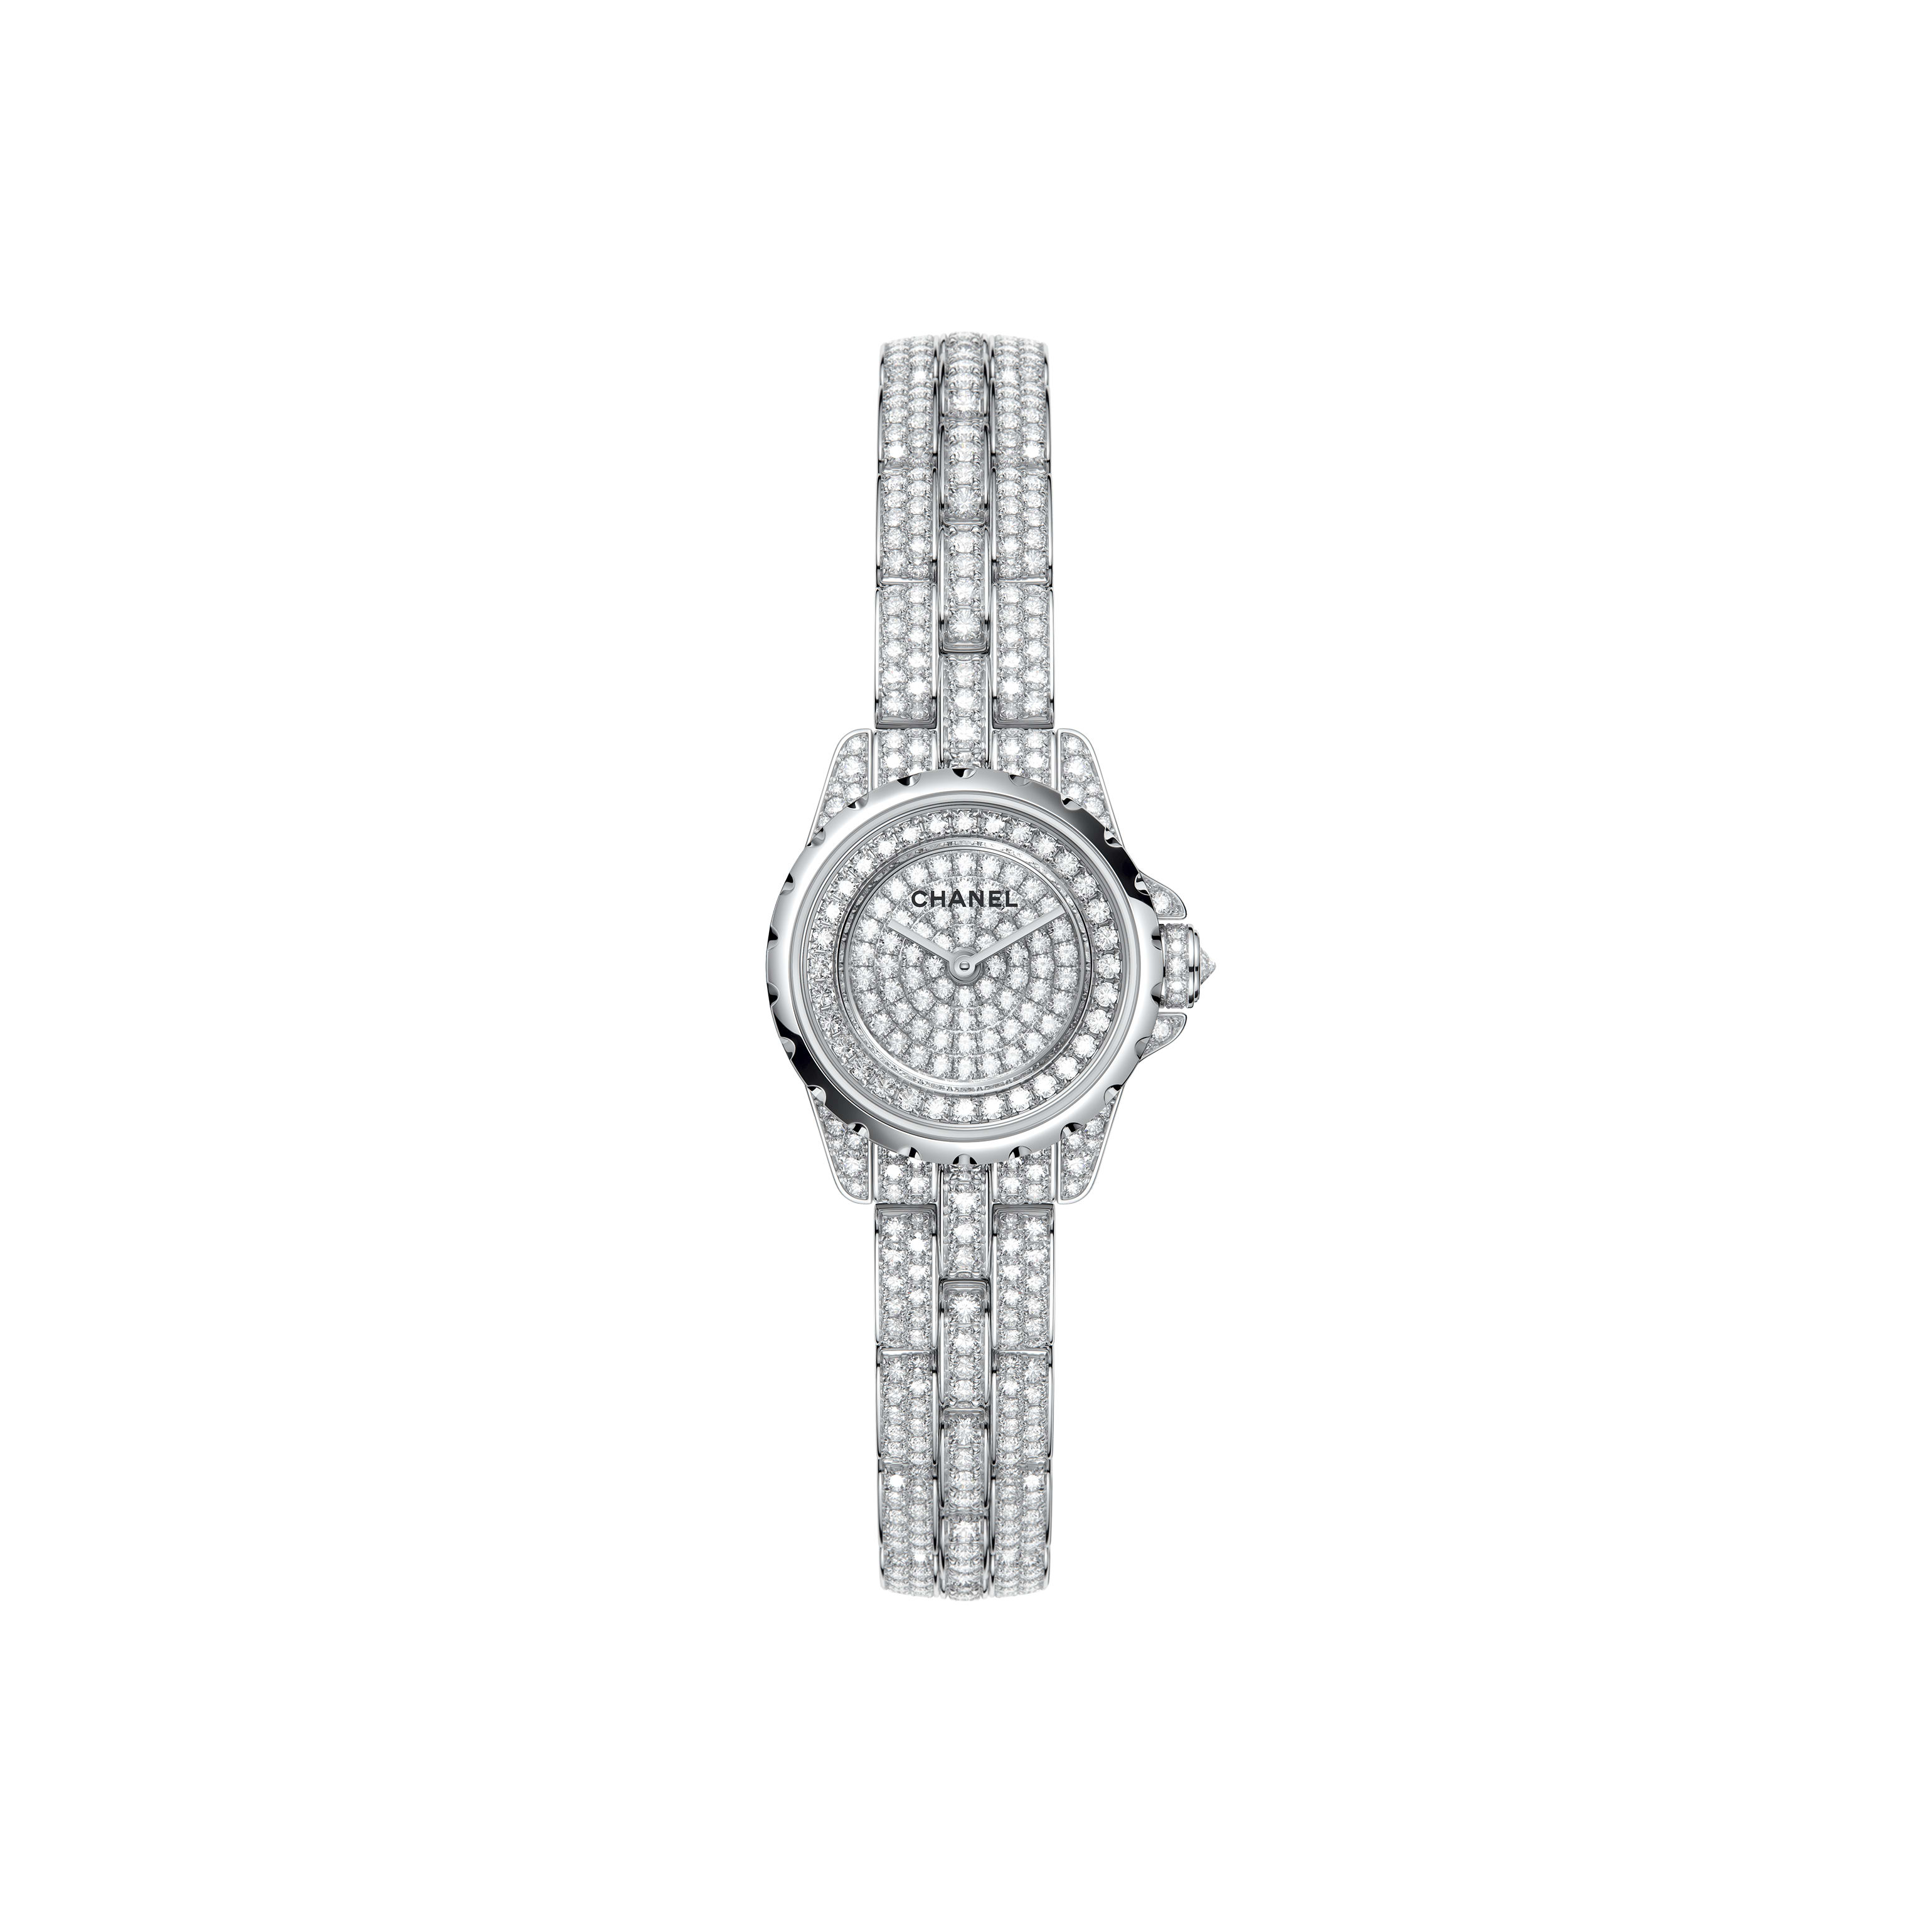 J12·XS High Jewellery Watch - White gold, case, dial, bezel and bracelet set with brilliant-cut diamonds - CHANEL - Default view - see standard sized version